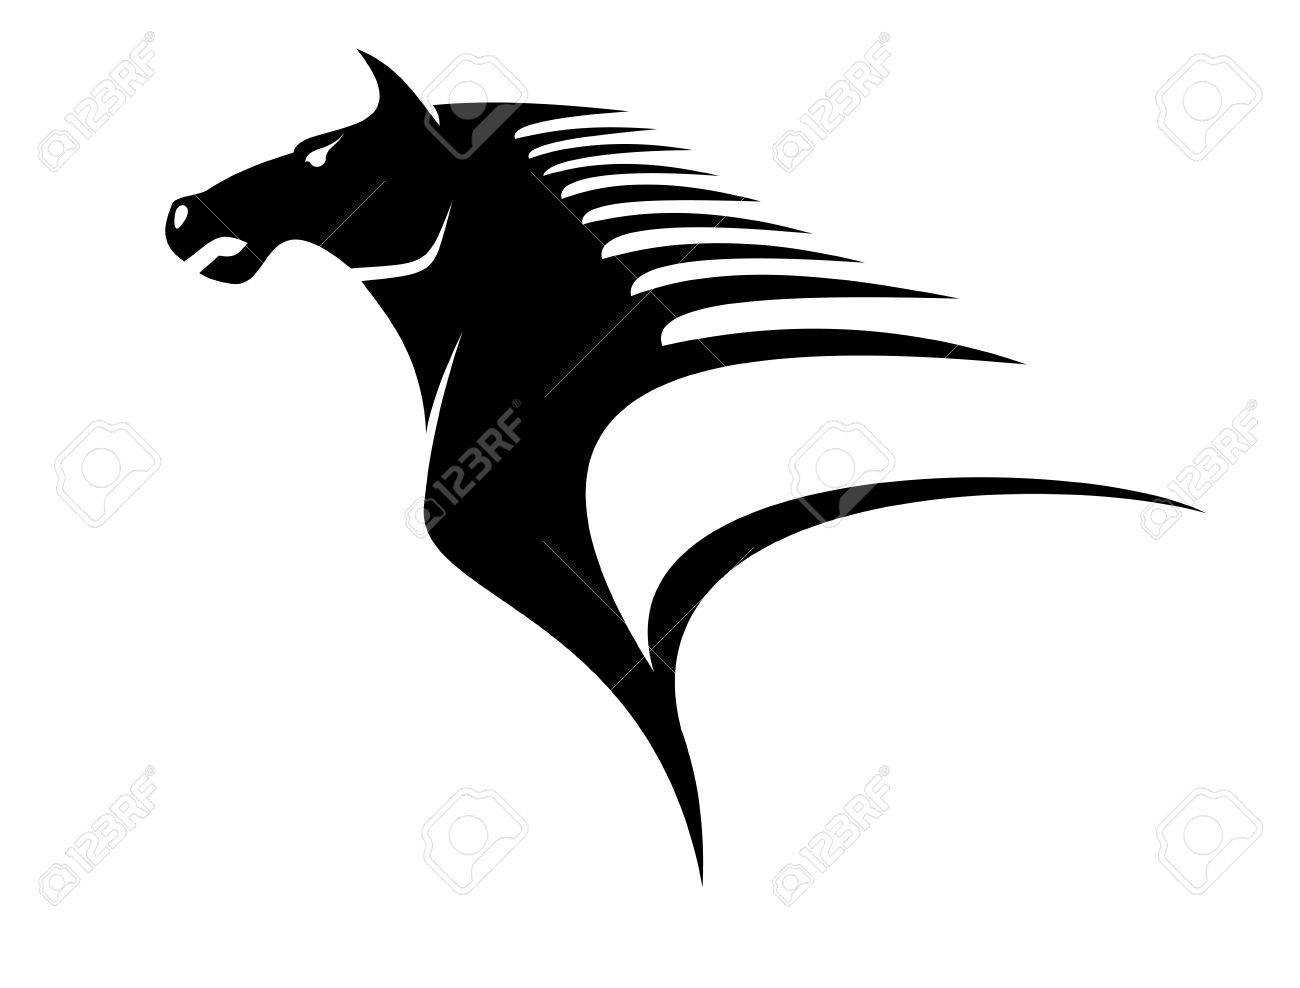 Stylized black and white illustration of the head of a horse